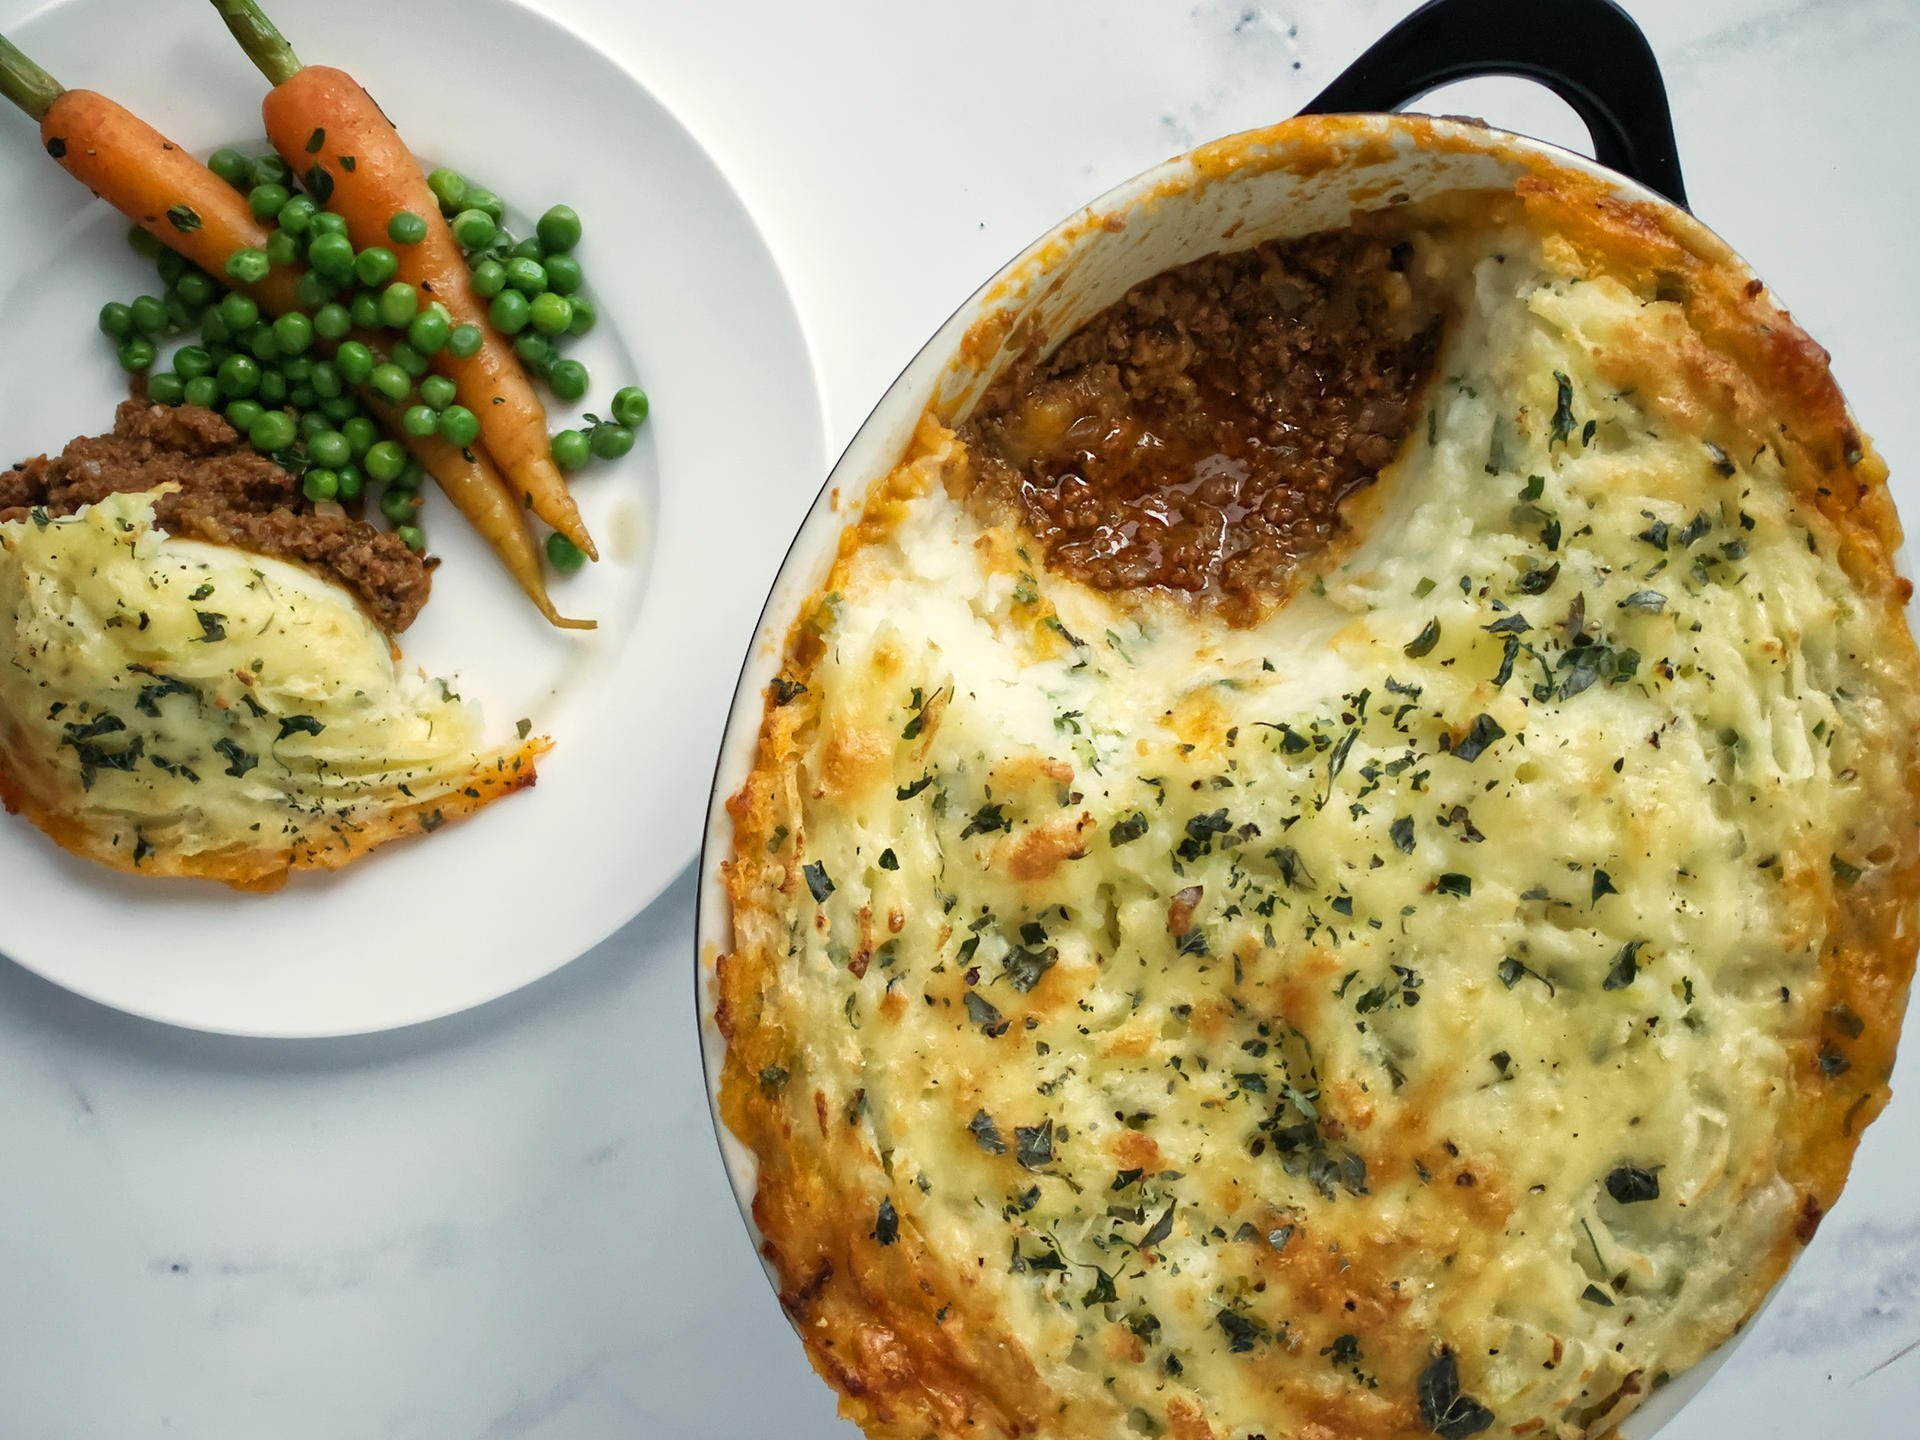 Shepherd's Pie served with Braised Peas and Carrots